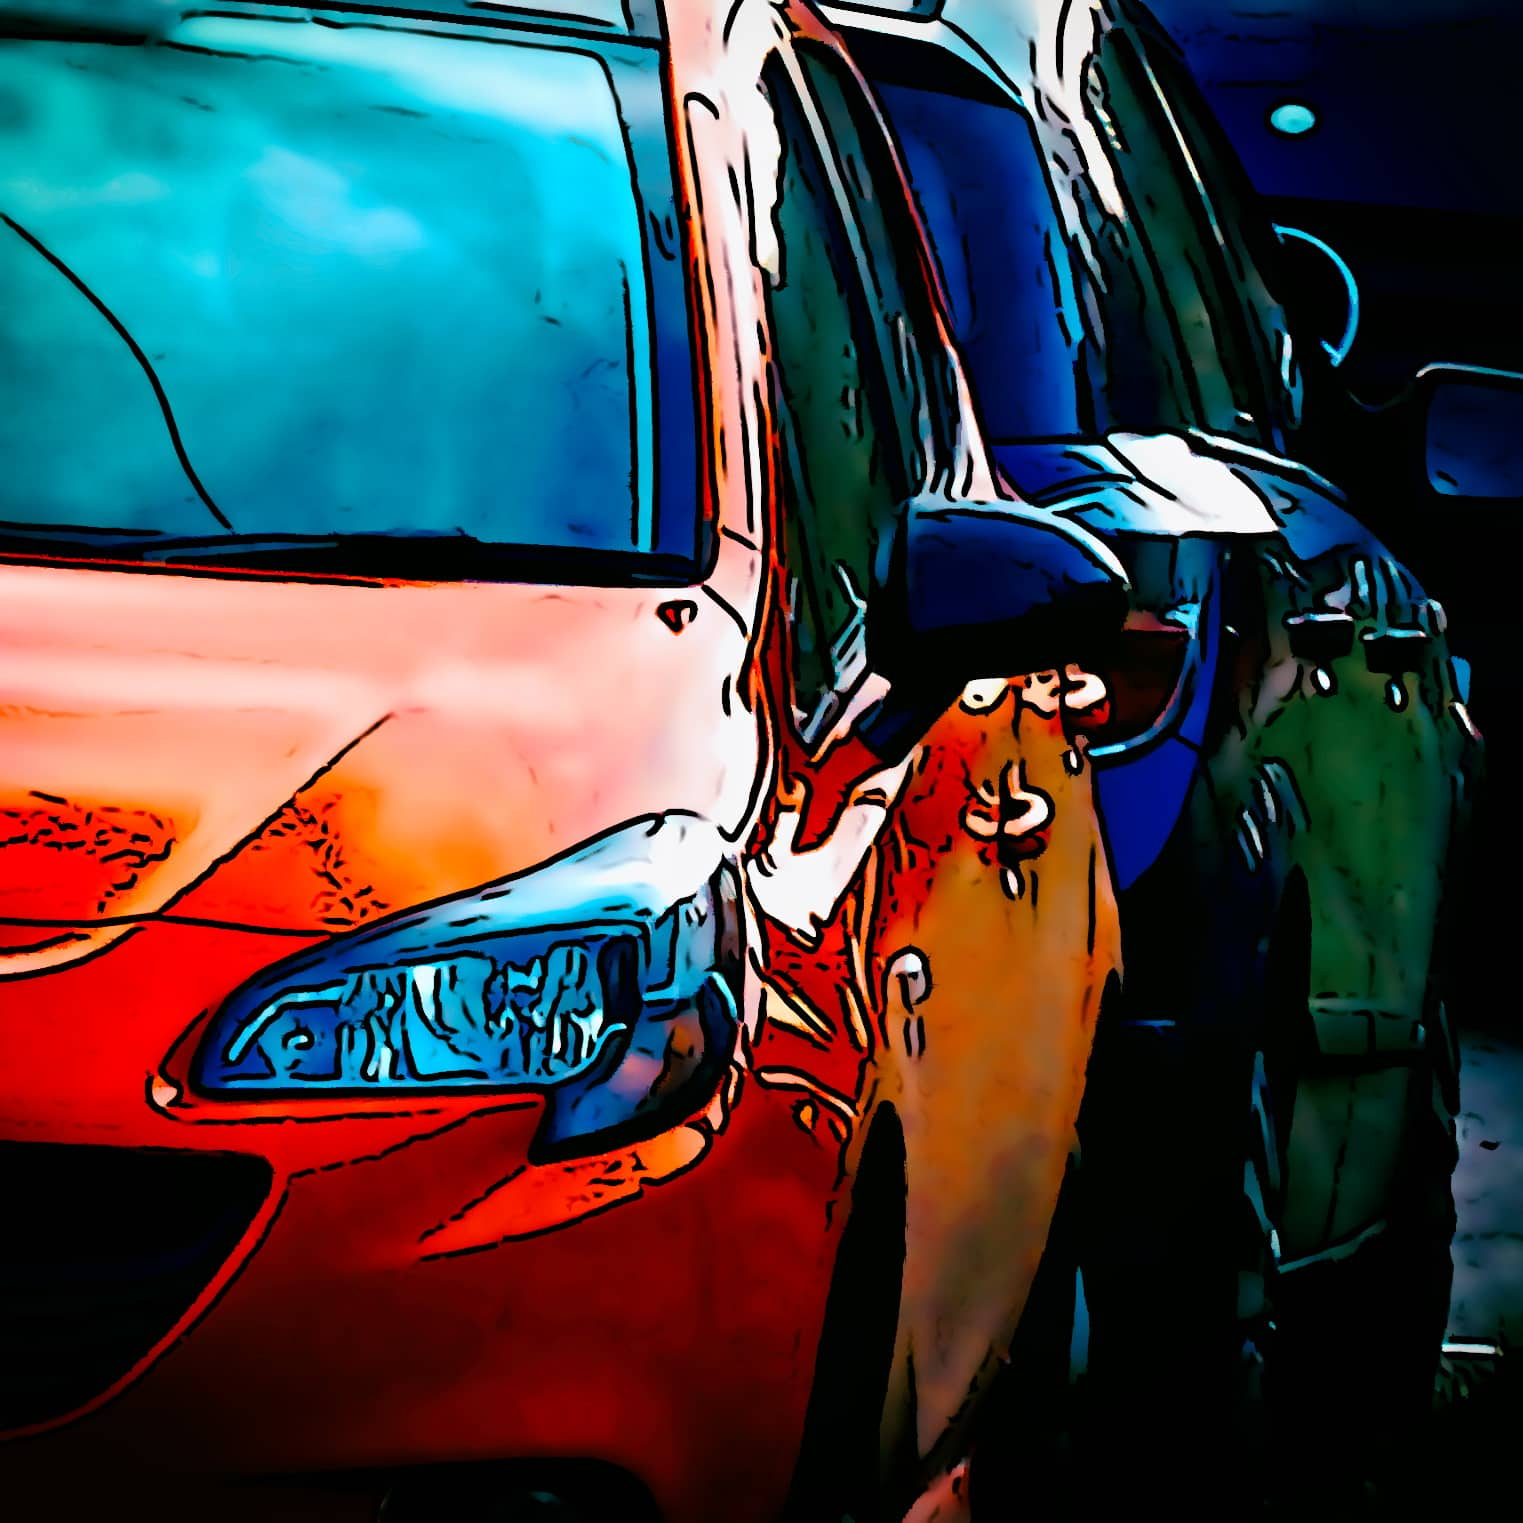 A stylised picture of a red car in a car park